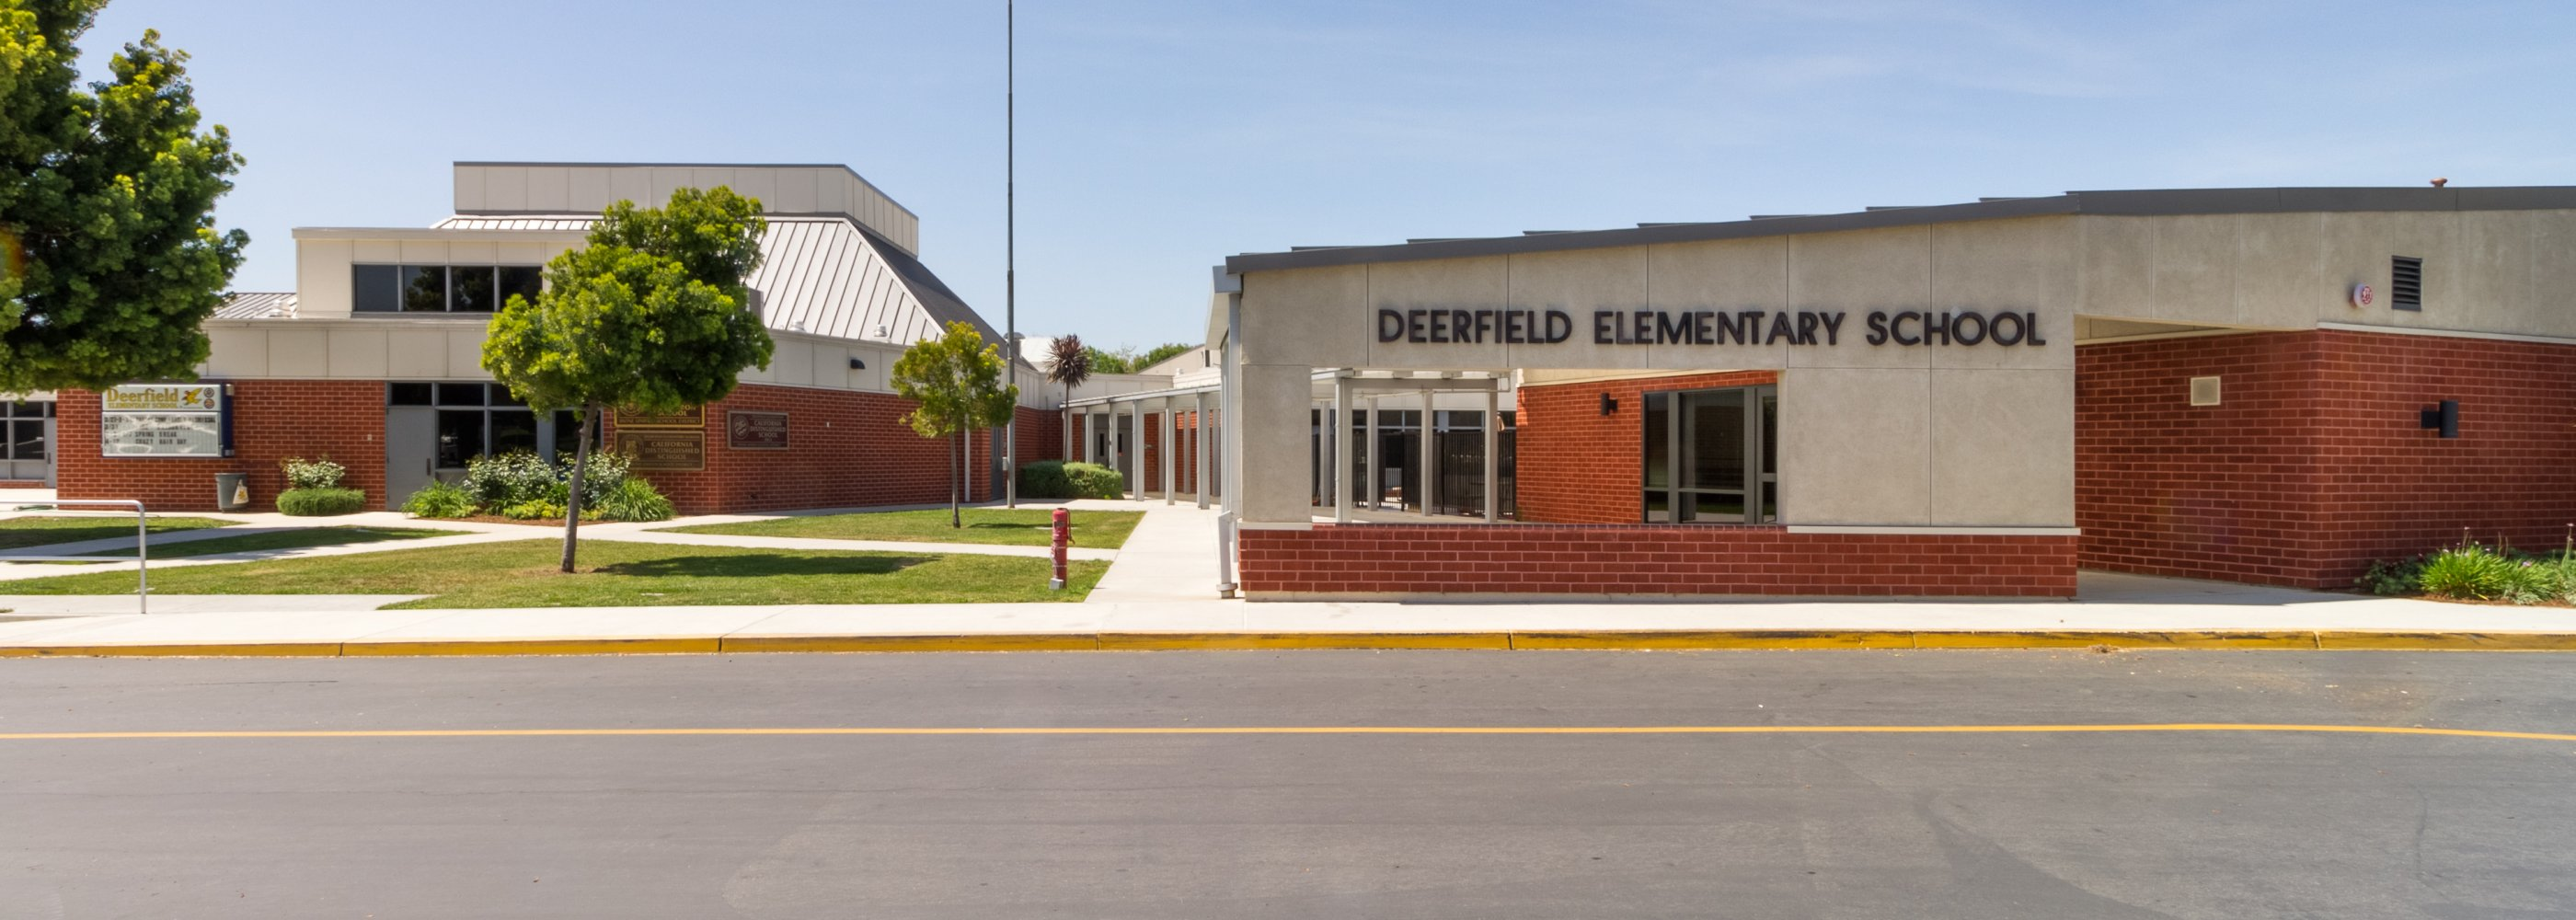 front of Deerfield school